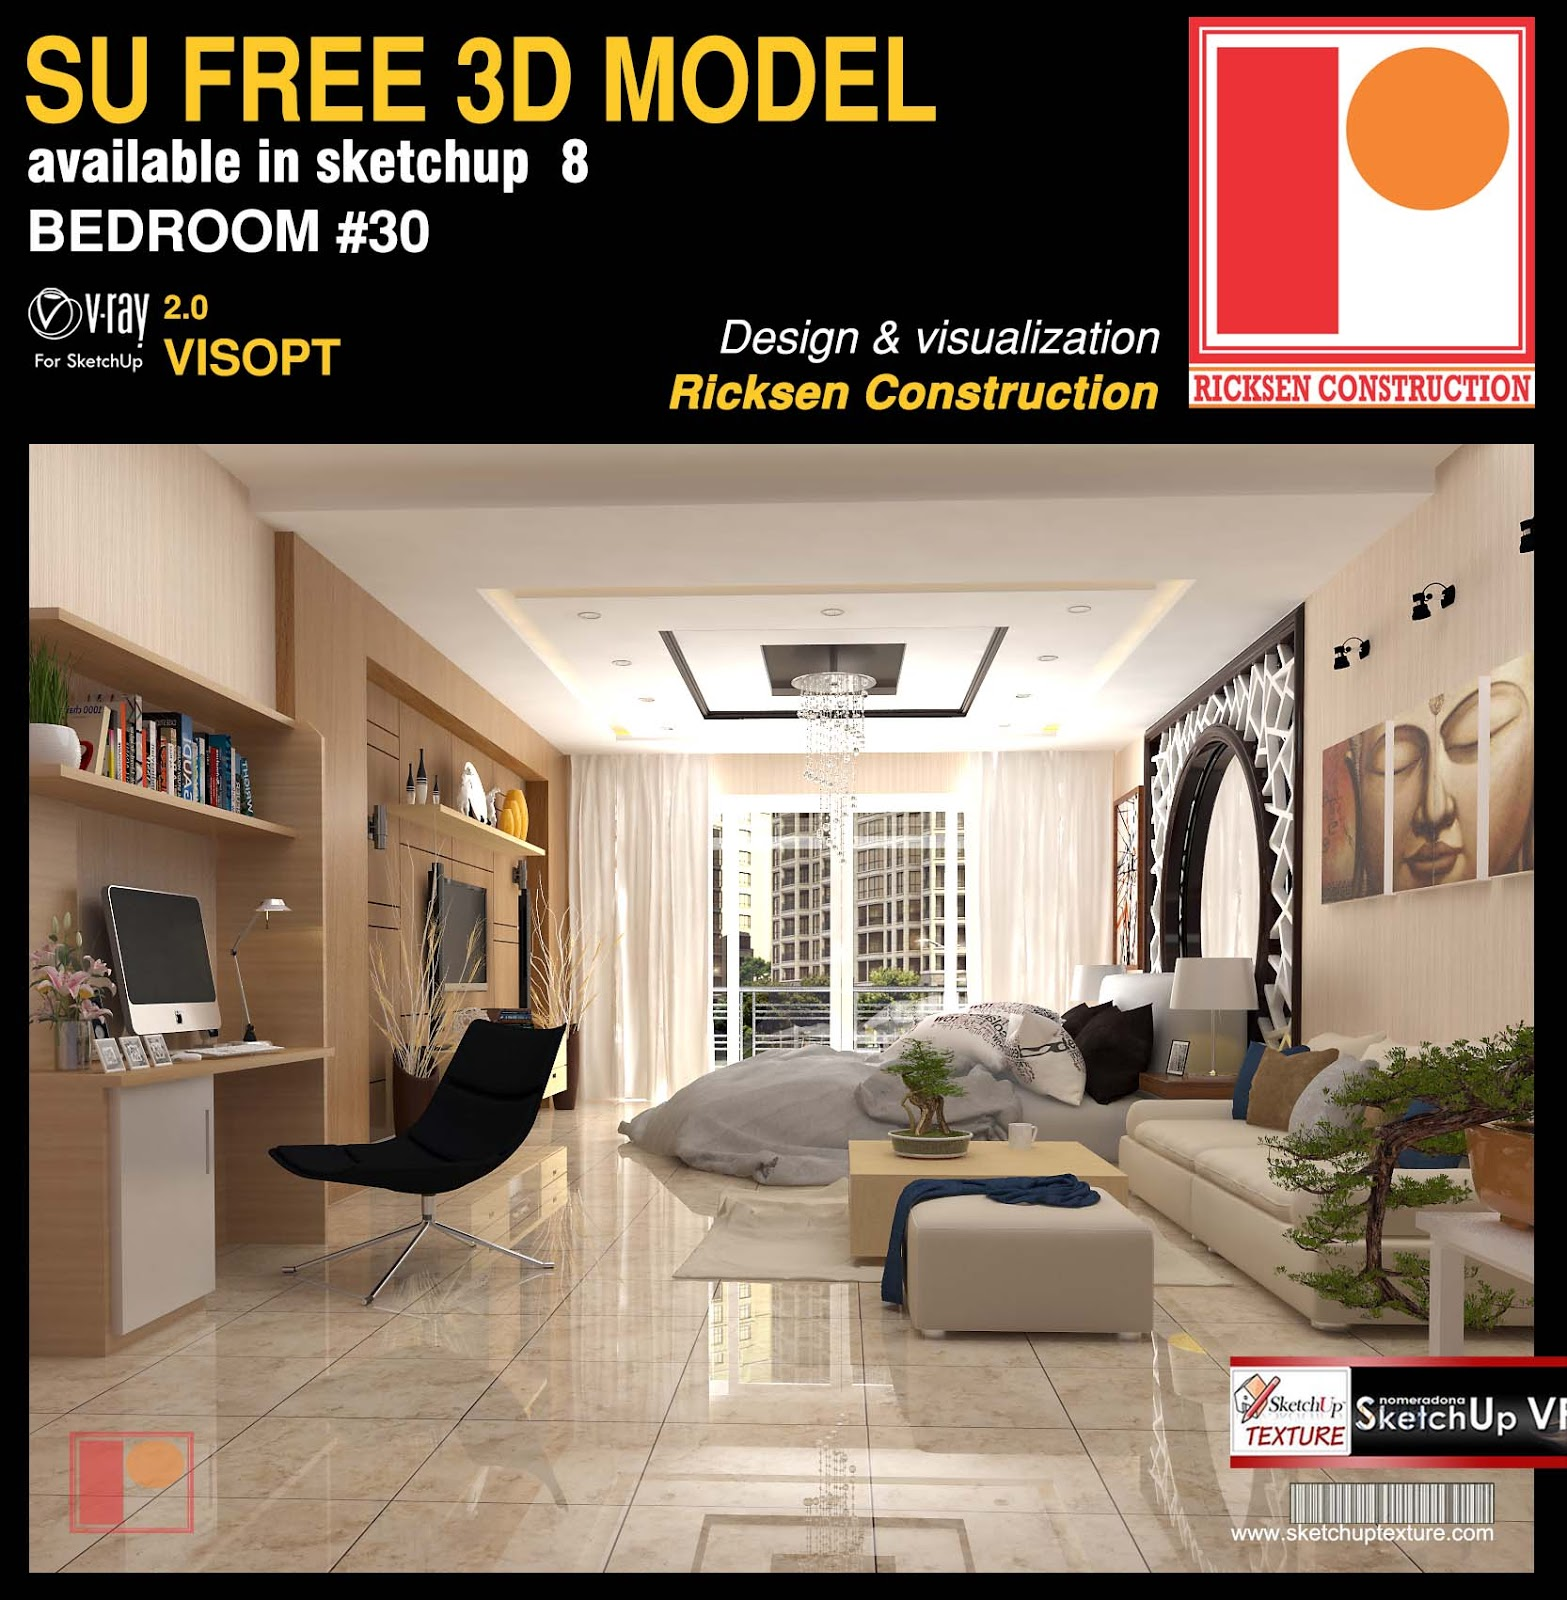 Free sketchup model bedroom 30 and Vray Visopt